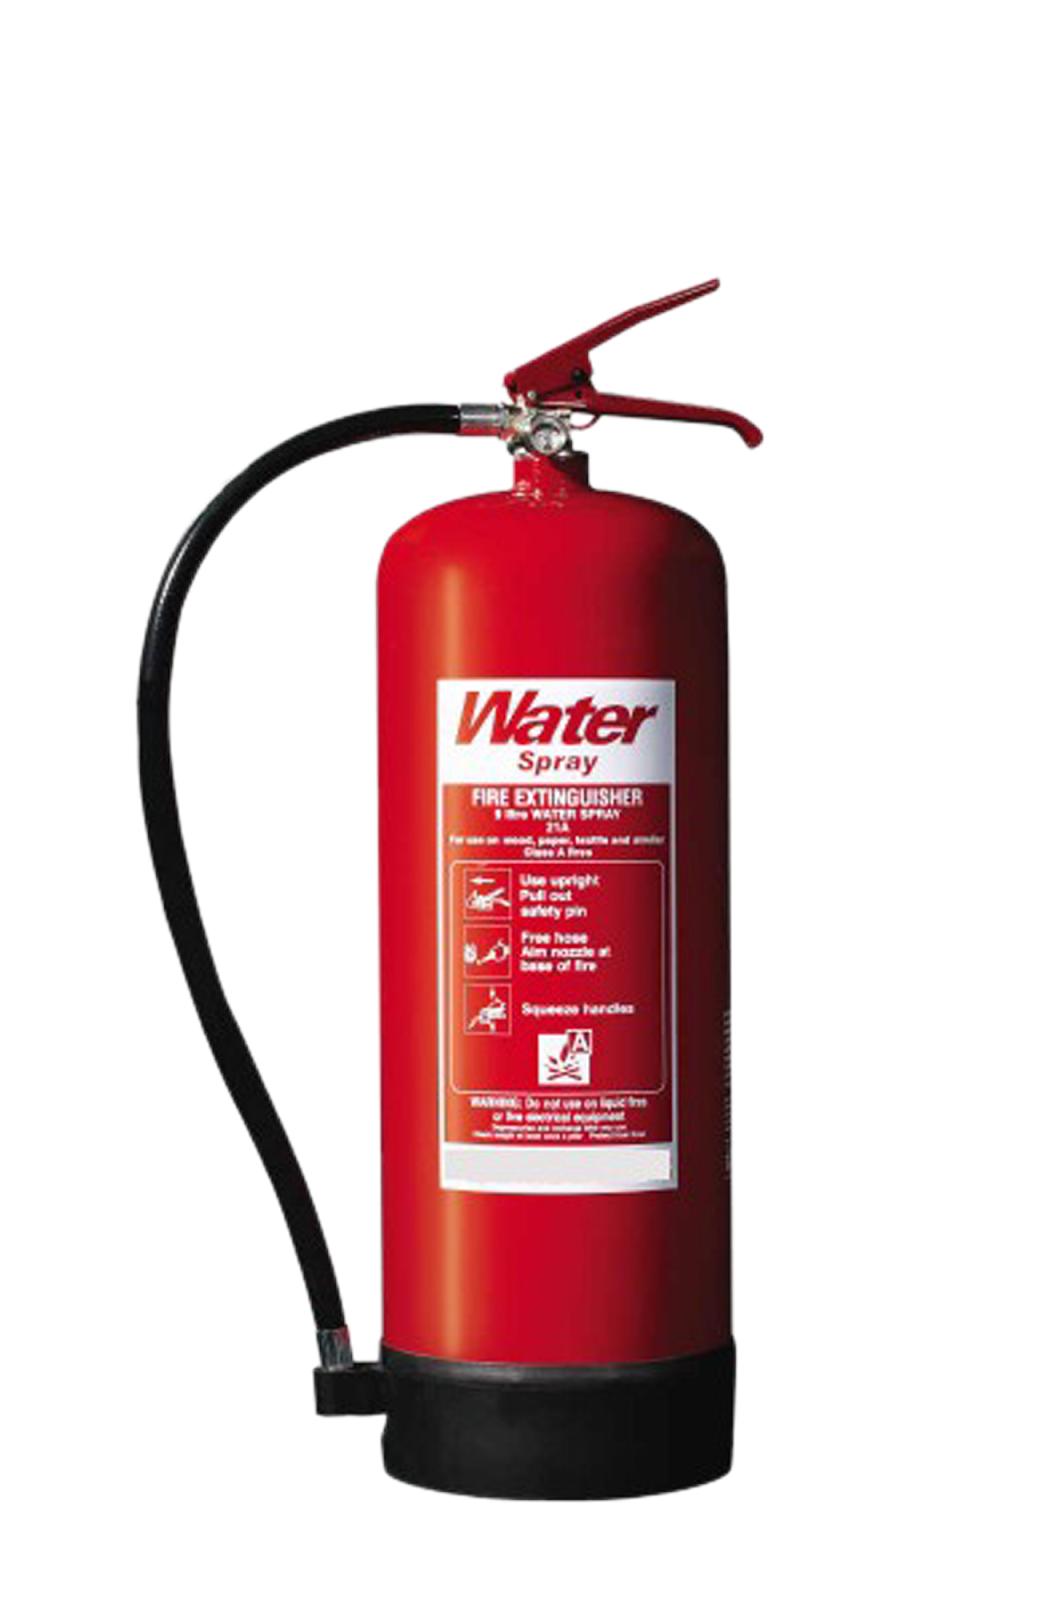 S fire png. Extinguisher images free download